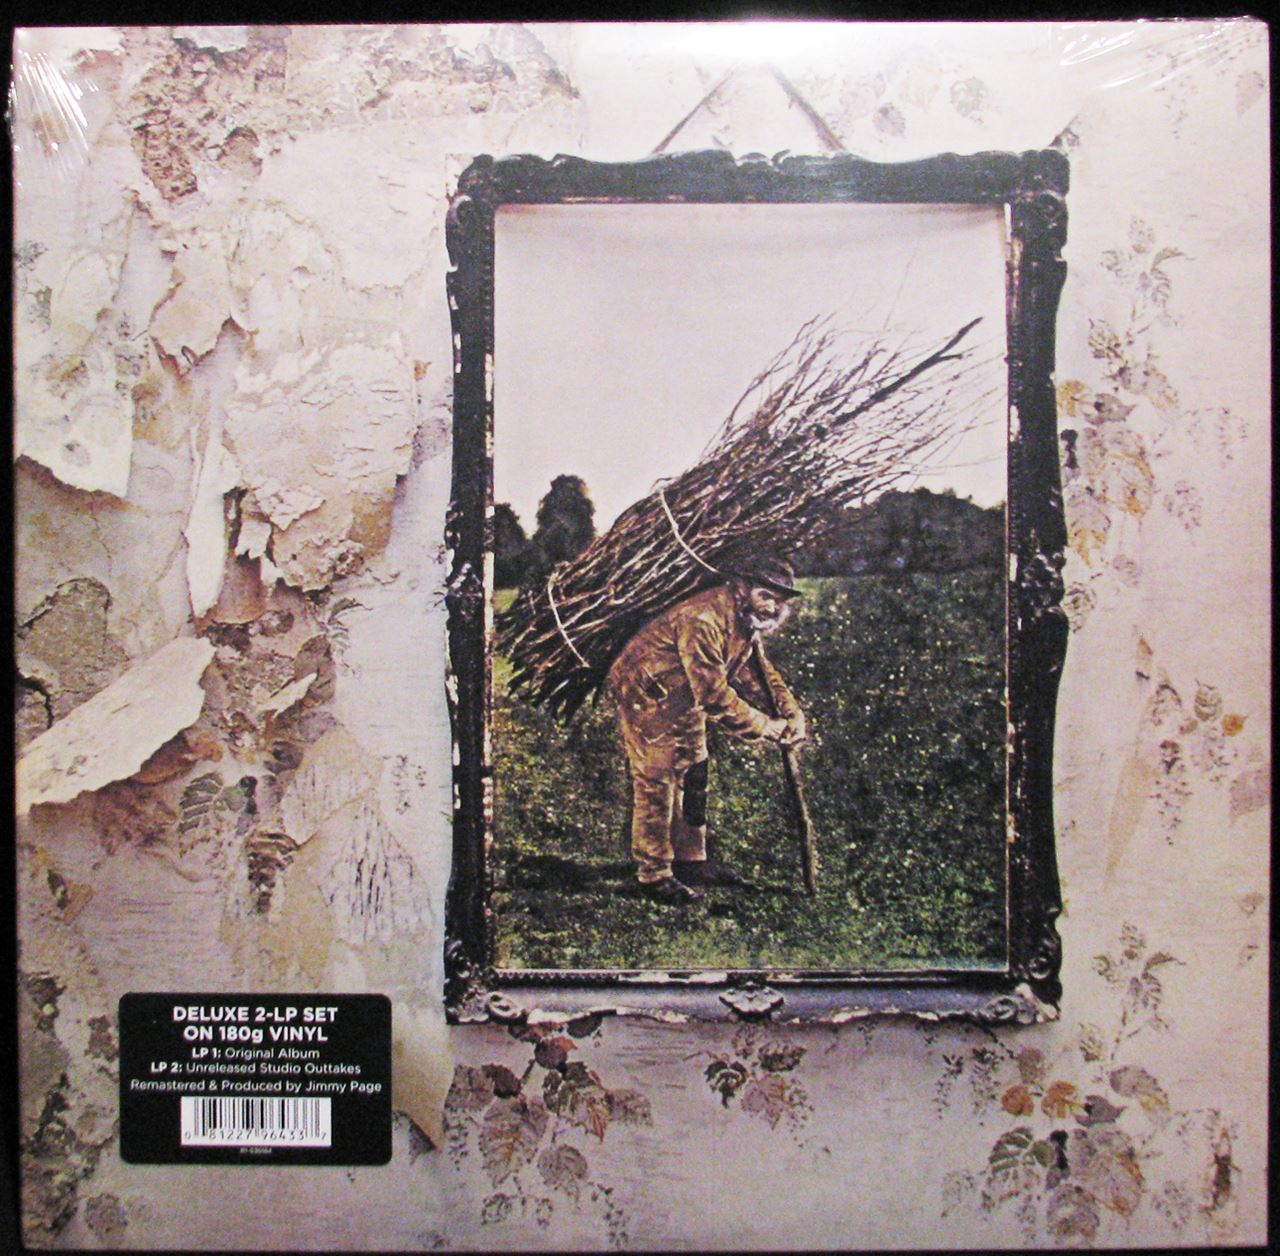 my-vinyl-rev_led-zeppelin-iv-4-180gram-remastered-by-jimmy-page-2lp-180gram-pressing-includes-unreleased-material